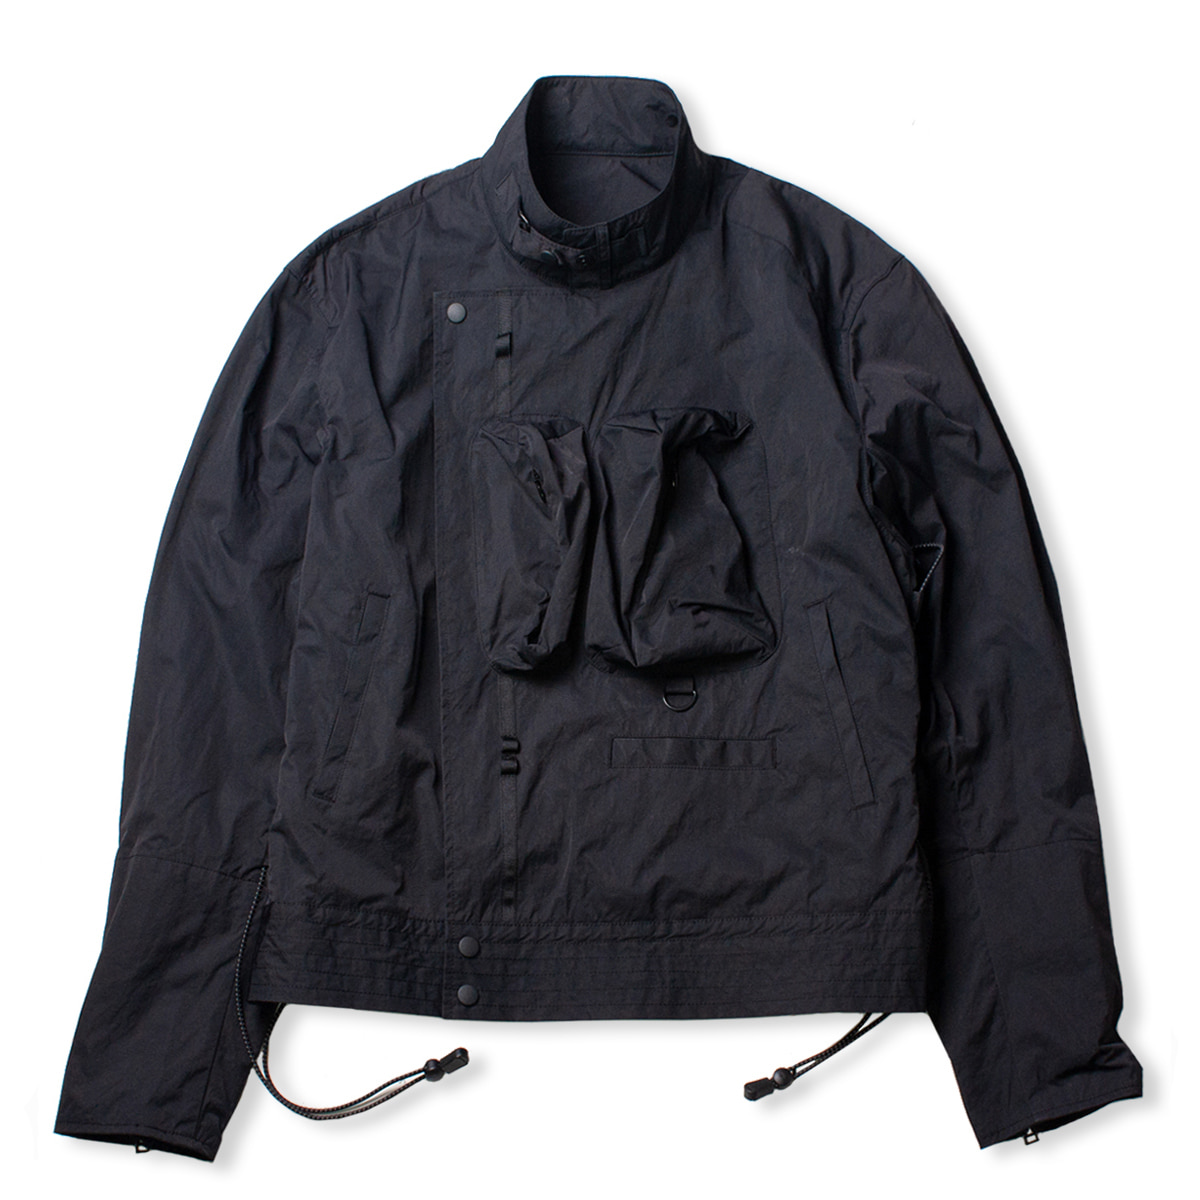 [BEHEAVYER] SWEDISH AM JACKET 'BLACK'